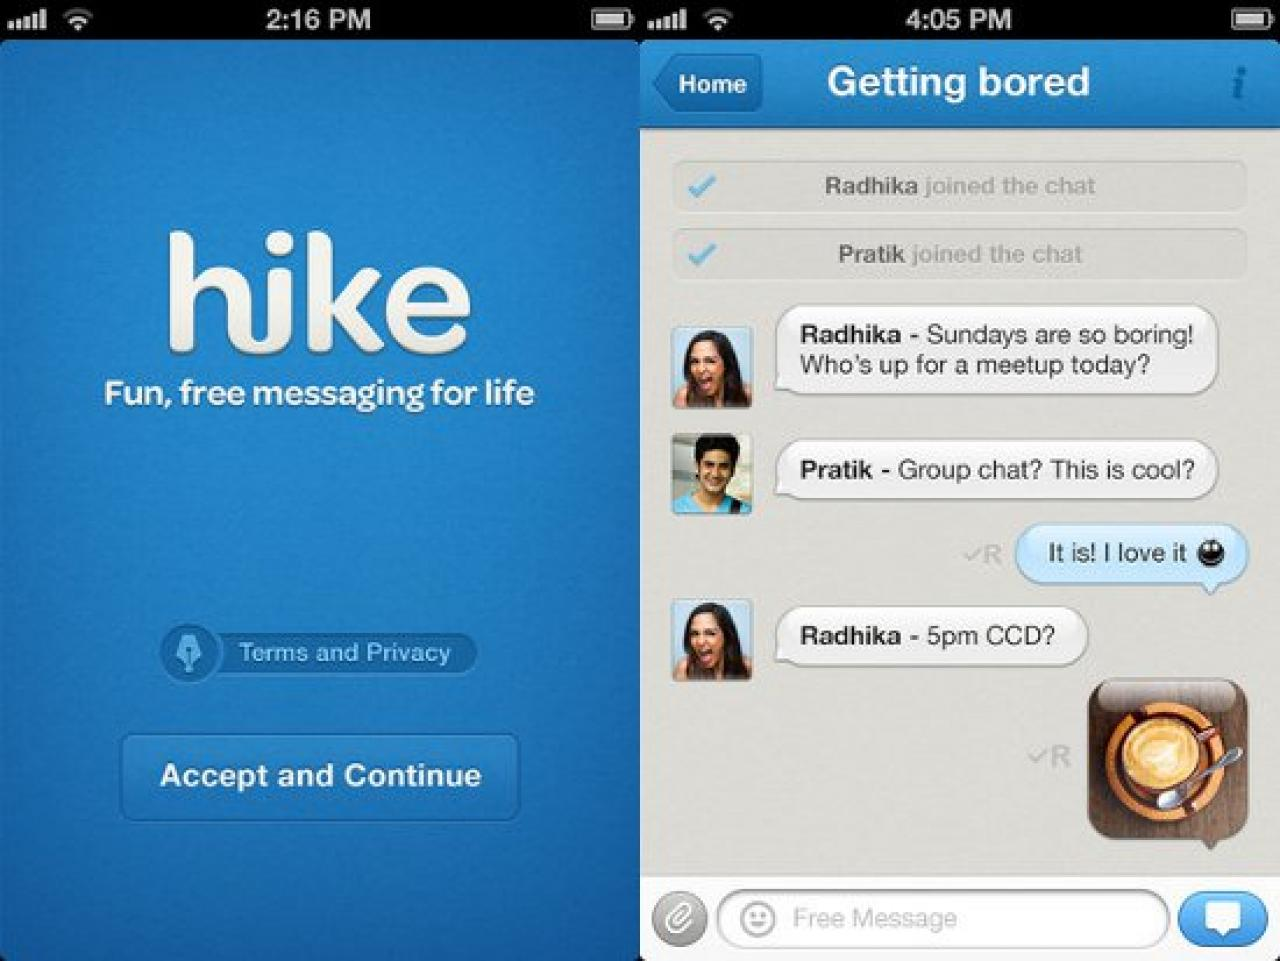 Send Unlimited Free SMS with Hike Messenger - Infocuts com